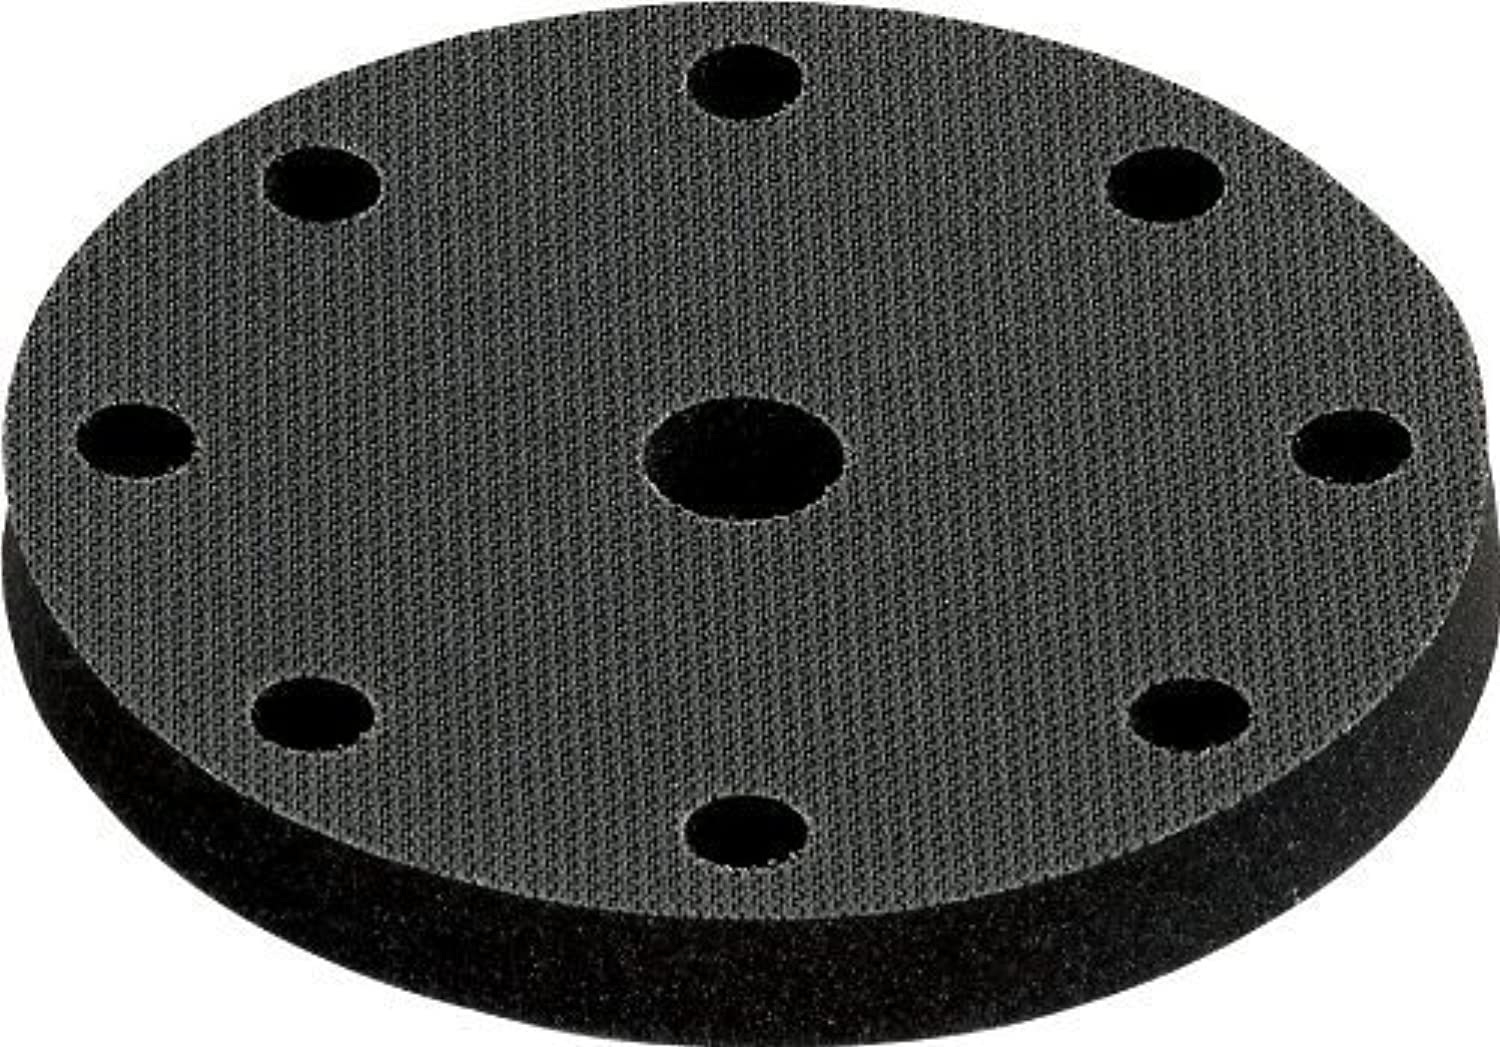 Festool 492271 5 Inch StickFix Interface Pad For Superfine Abrasive, 125mm (5 in) by Festool